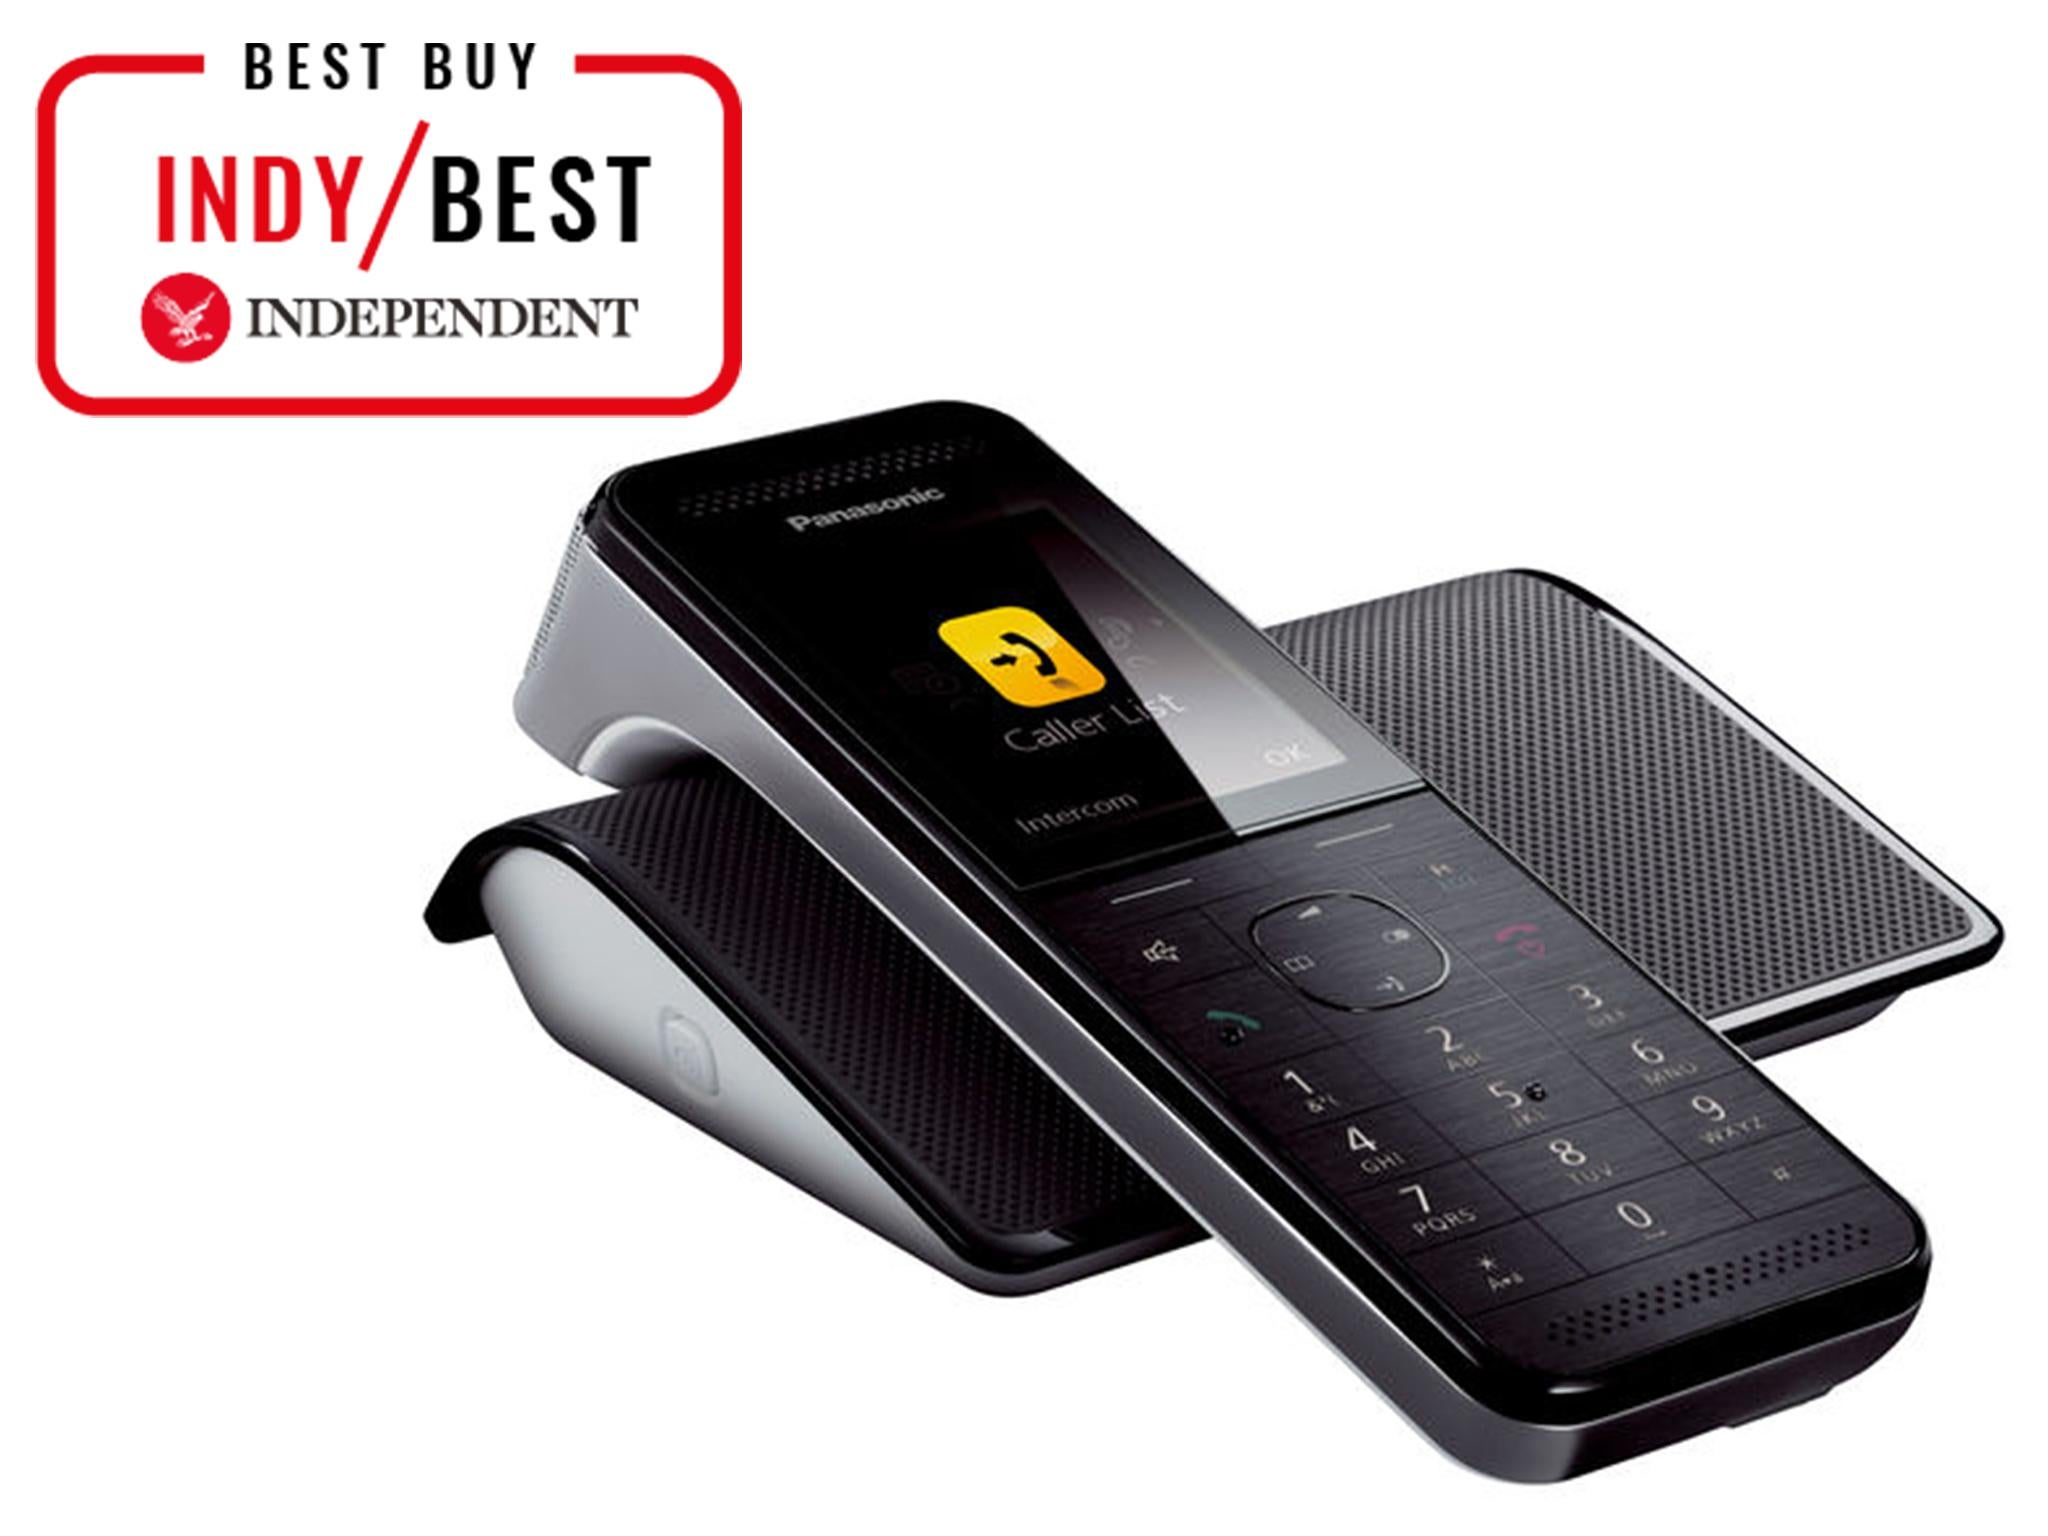 Panasonic kx prw120ew smart cordless phone with answering machine £79 99 currys